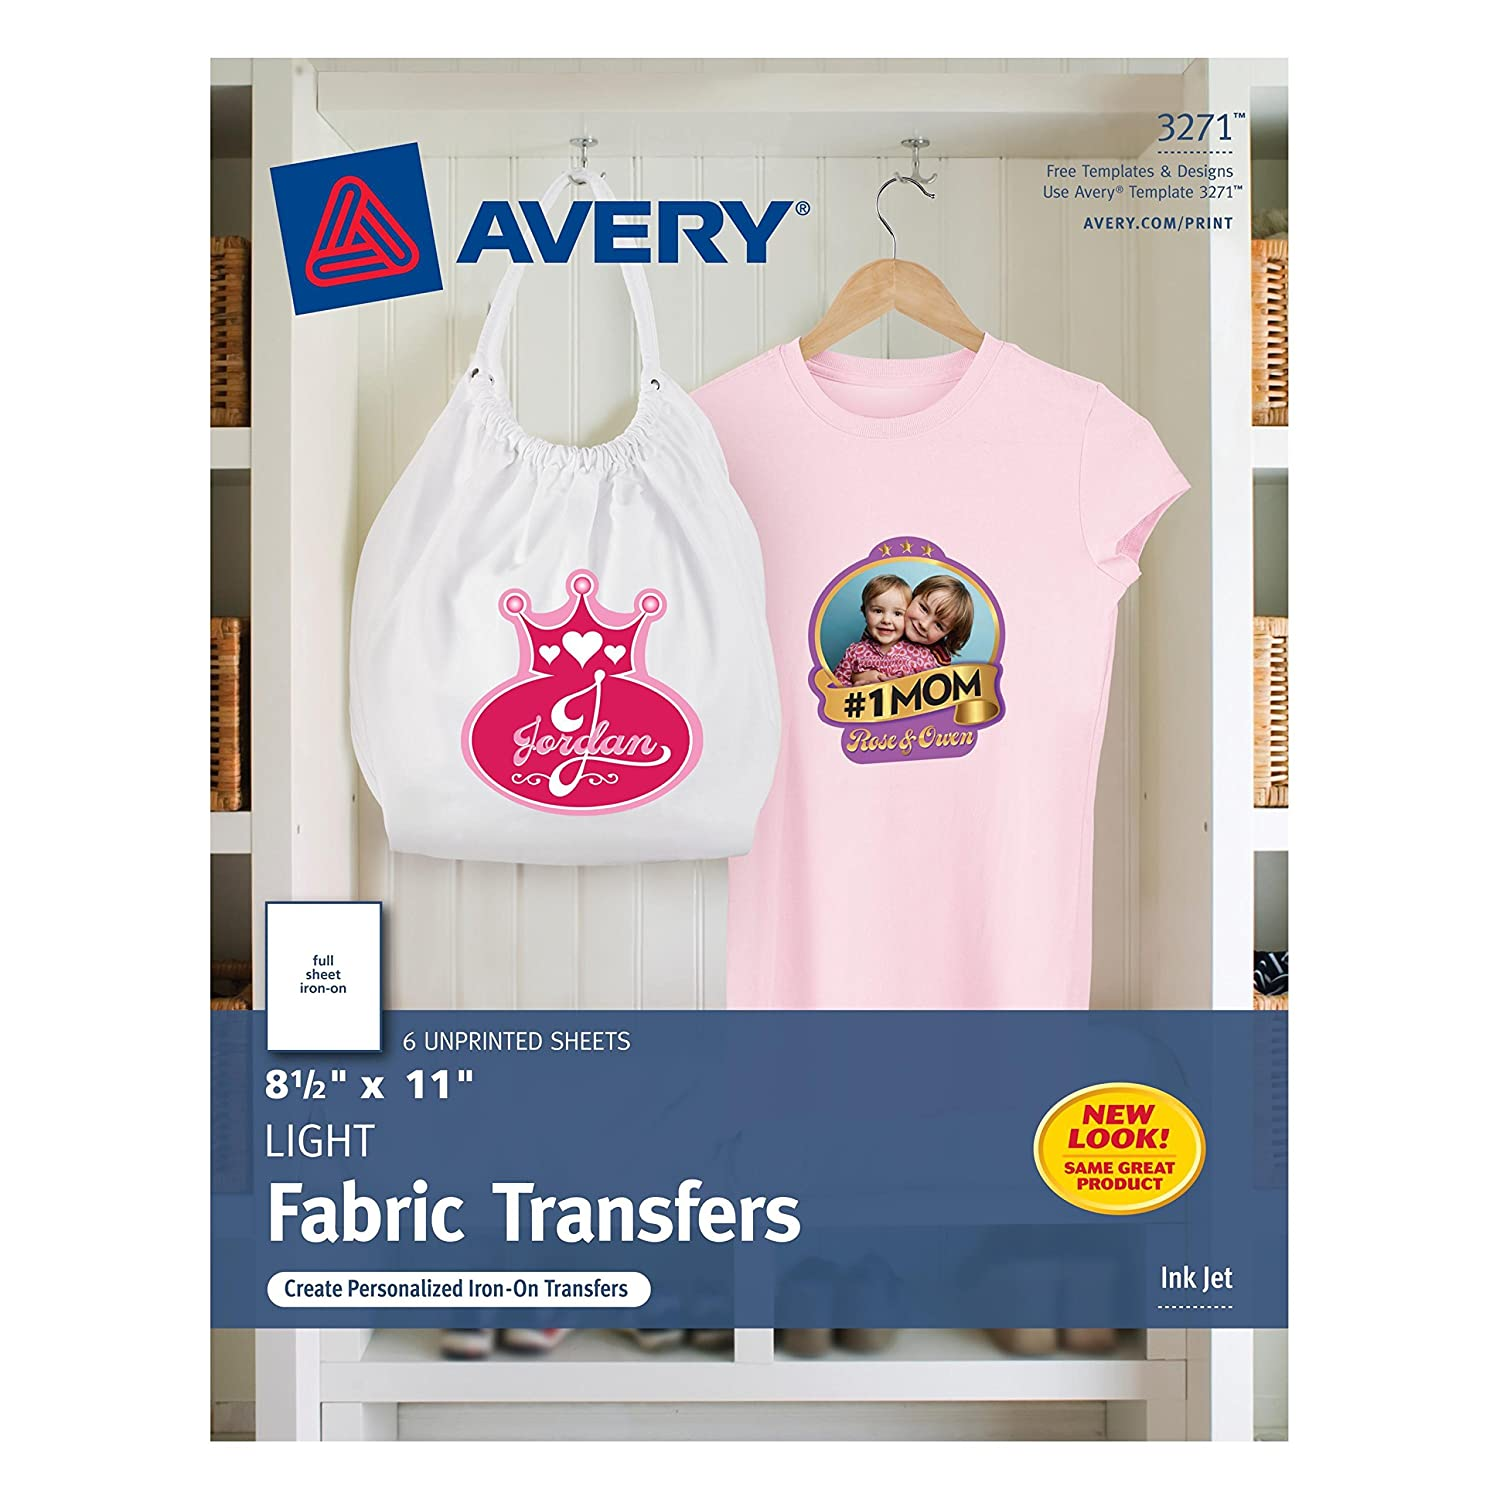 Design your own t-shirt international shipping - Amazon Com Avery T Shirt Transfers For Inkjet Printers 8 5 X 11 Inches For Use With White Or Light Colored Fabric 6 Sheets 03271 Fabric Iron On